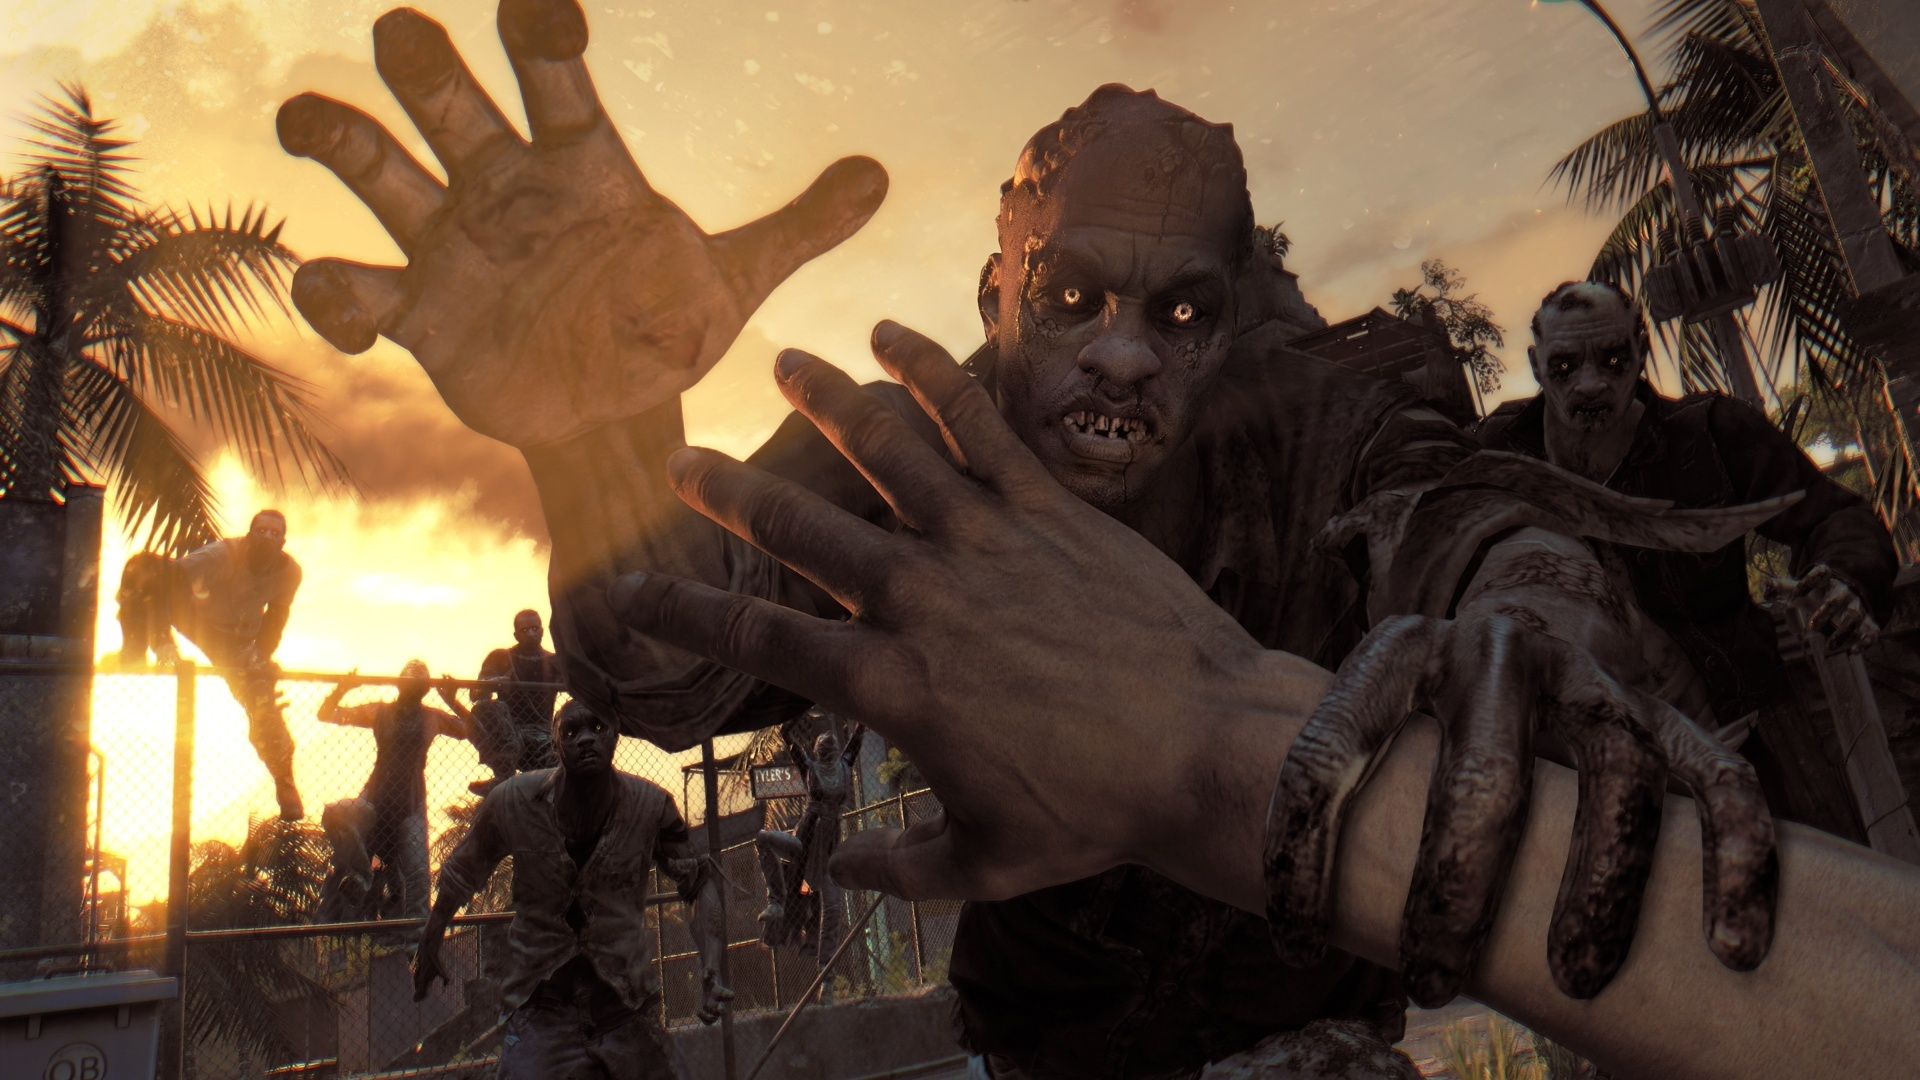 Dying Light is now Available on Xbox One, PS4, and PC.